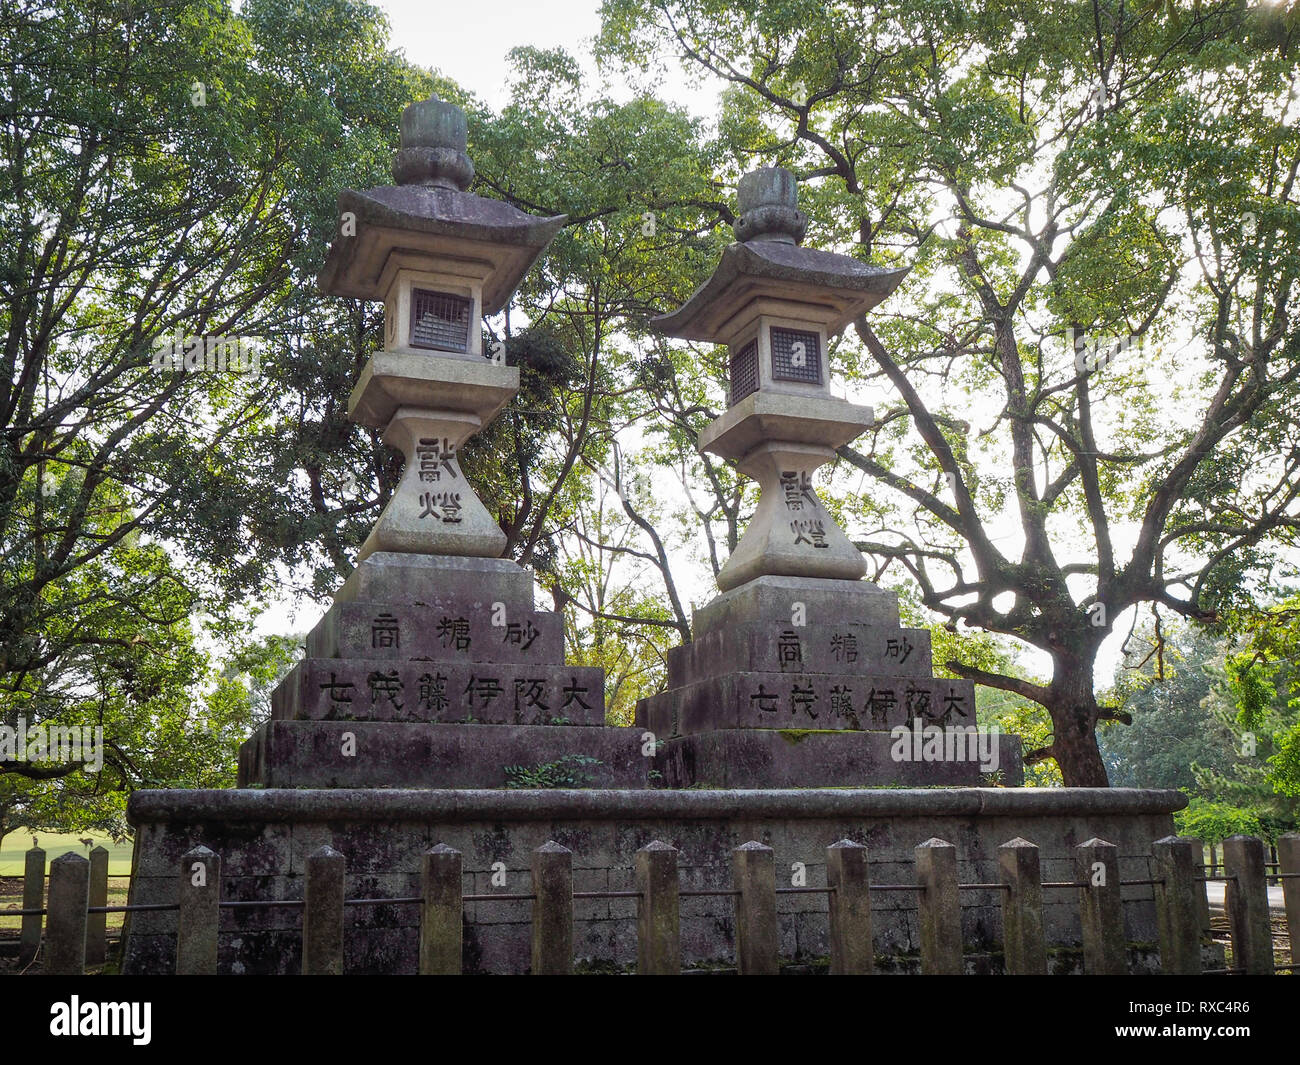 Nara, Japan - 15 Oct 2018: Ancient mossy stone structures near the Kasuga Grand Shrine at Nara, Japan - Stock Image